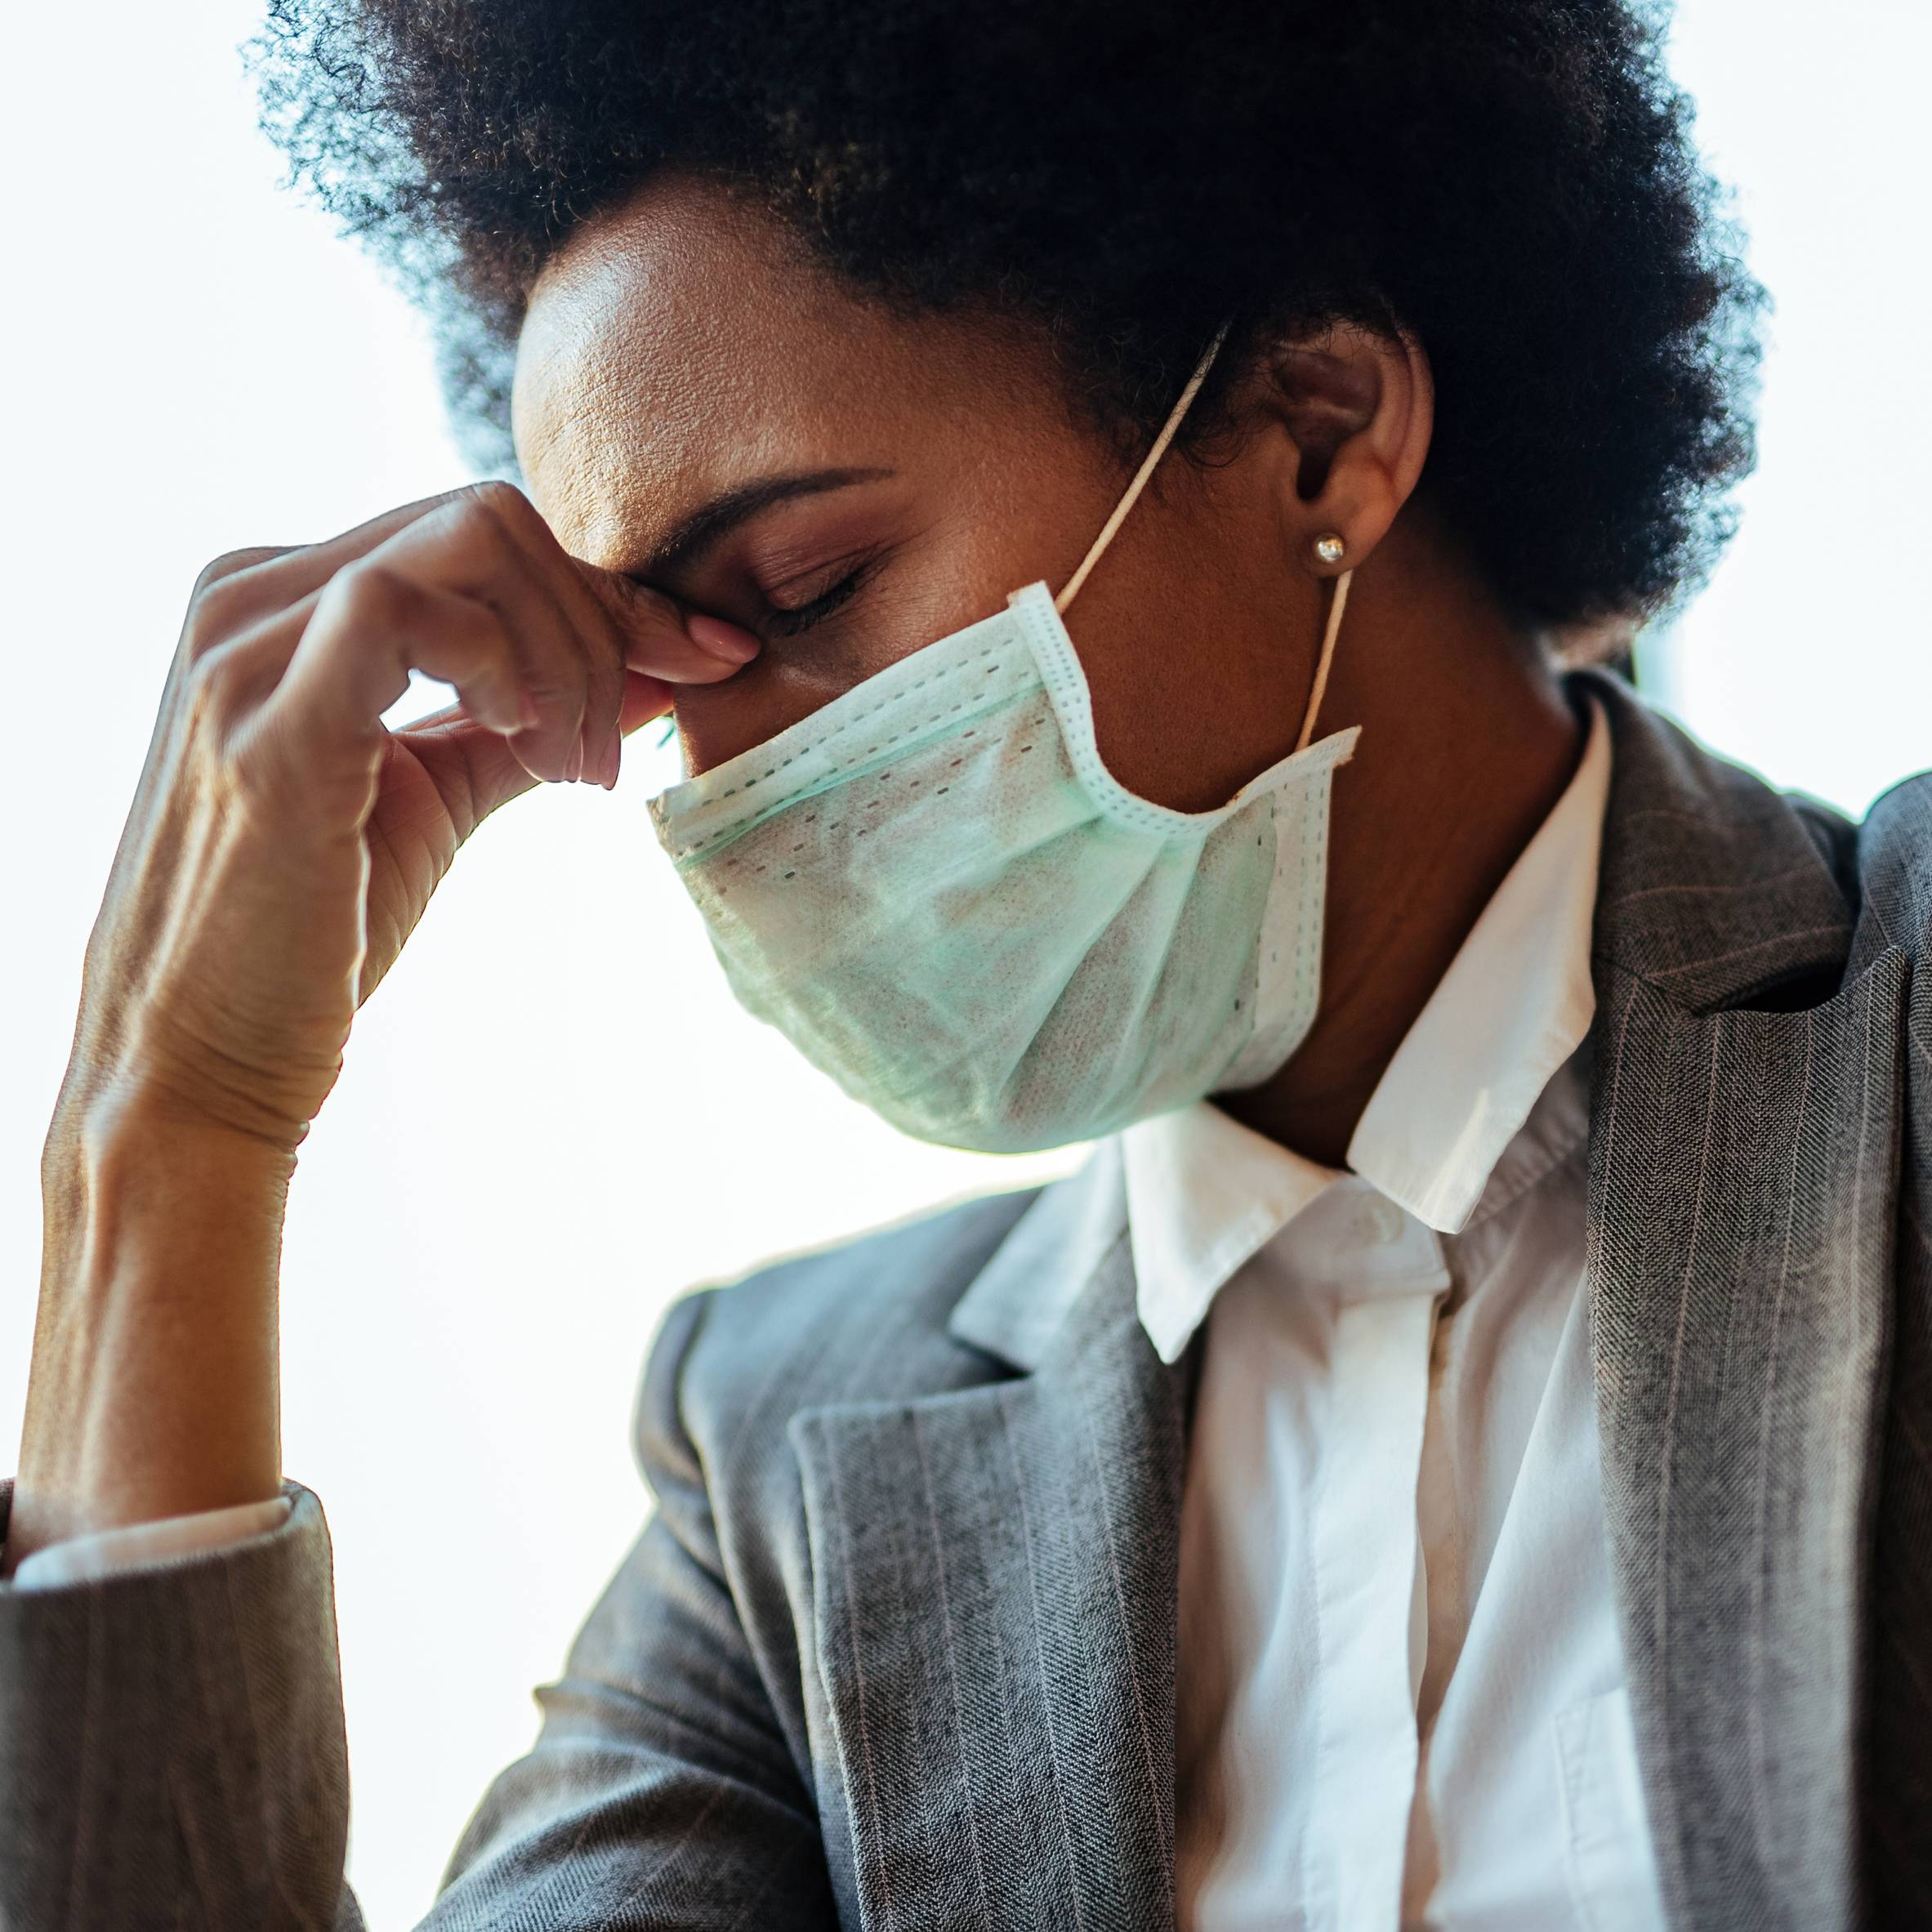 A Photo Of An Exhausted Black Businesswoman Fighting A Migraine, As Evident By Her Grasping The Bridge Of Her Nose. The Woman Is Wearing A Face Mask To Protect Herself From COVID.